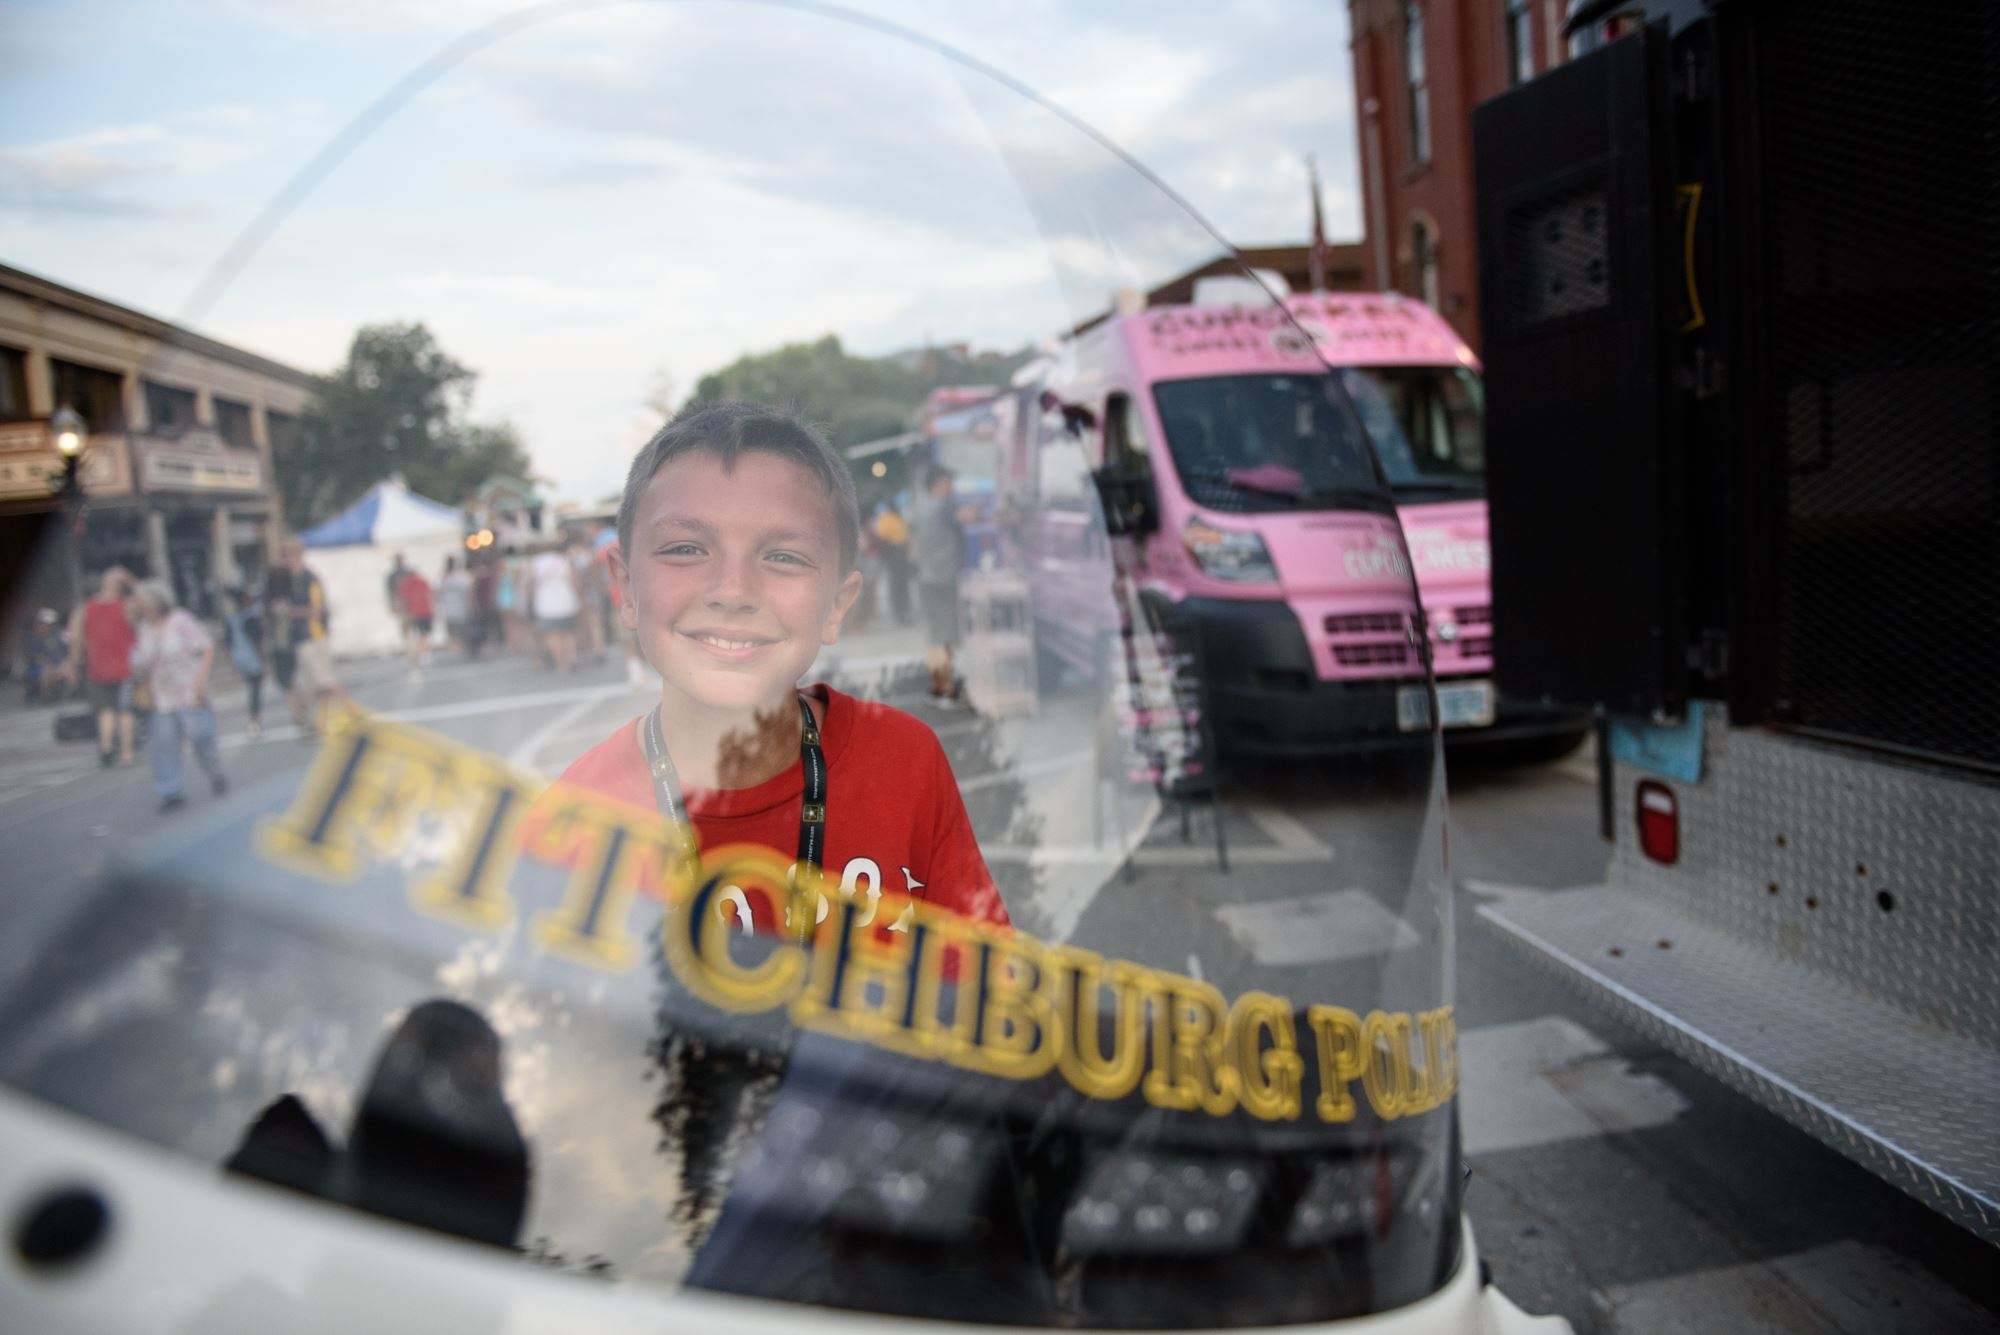 070318_FitchburgCivicDays-44